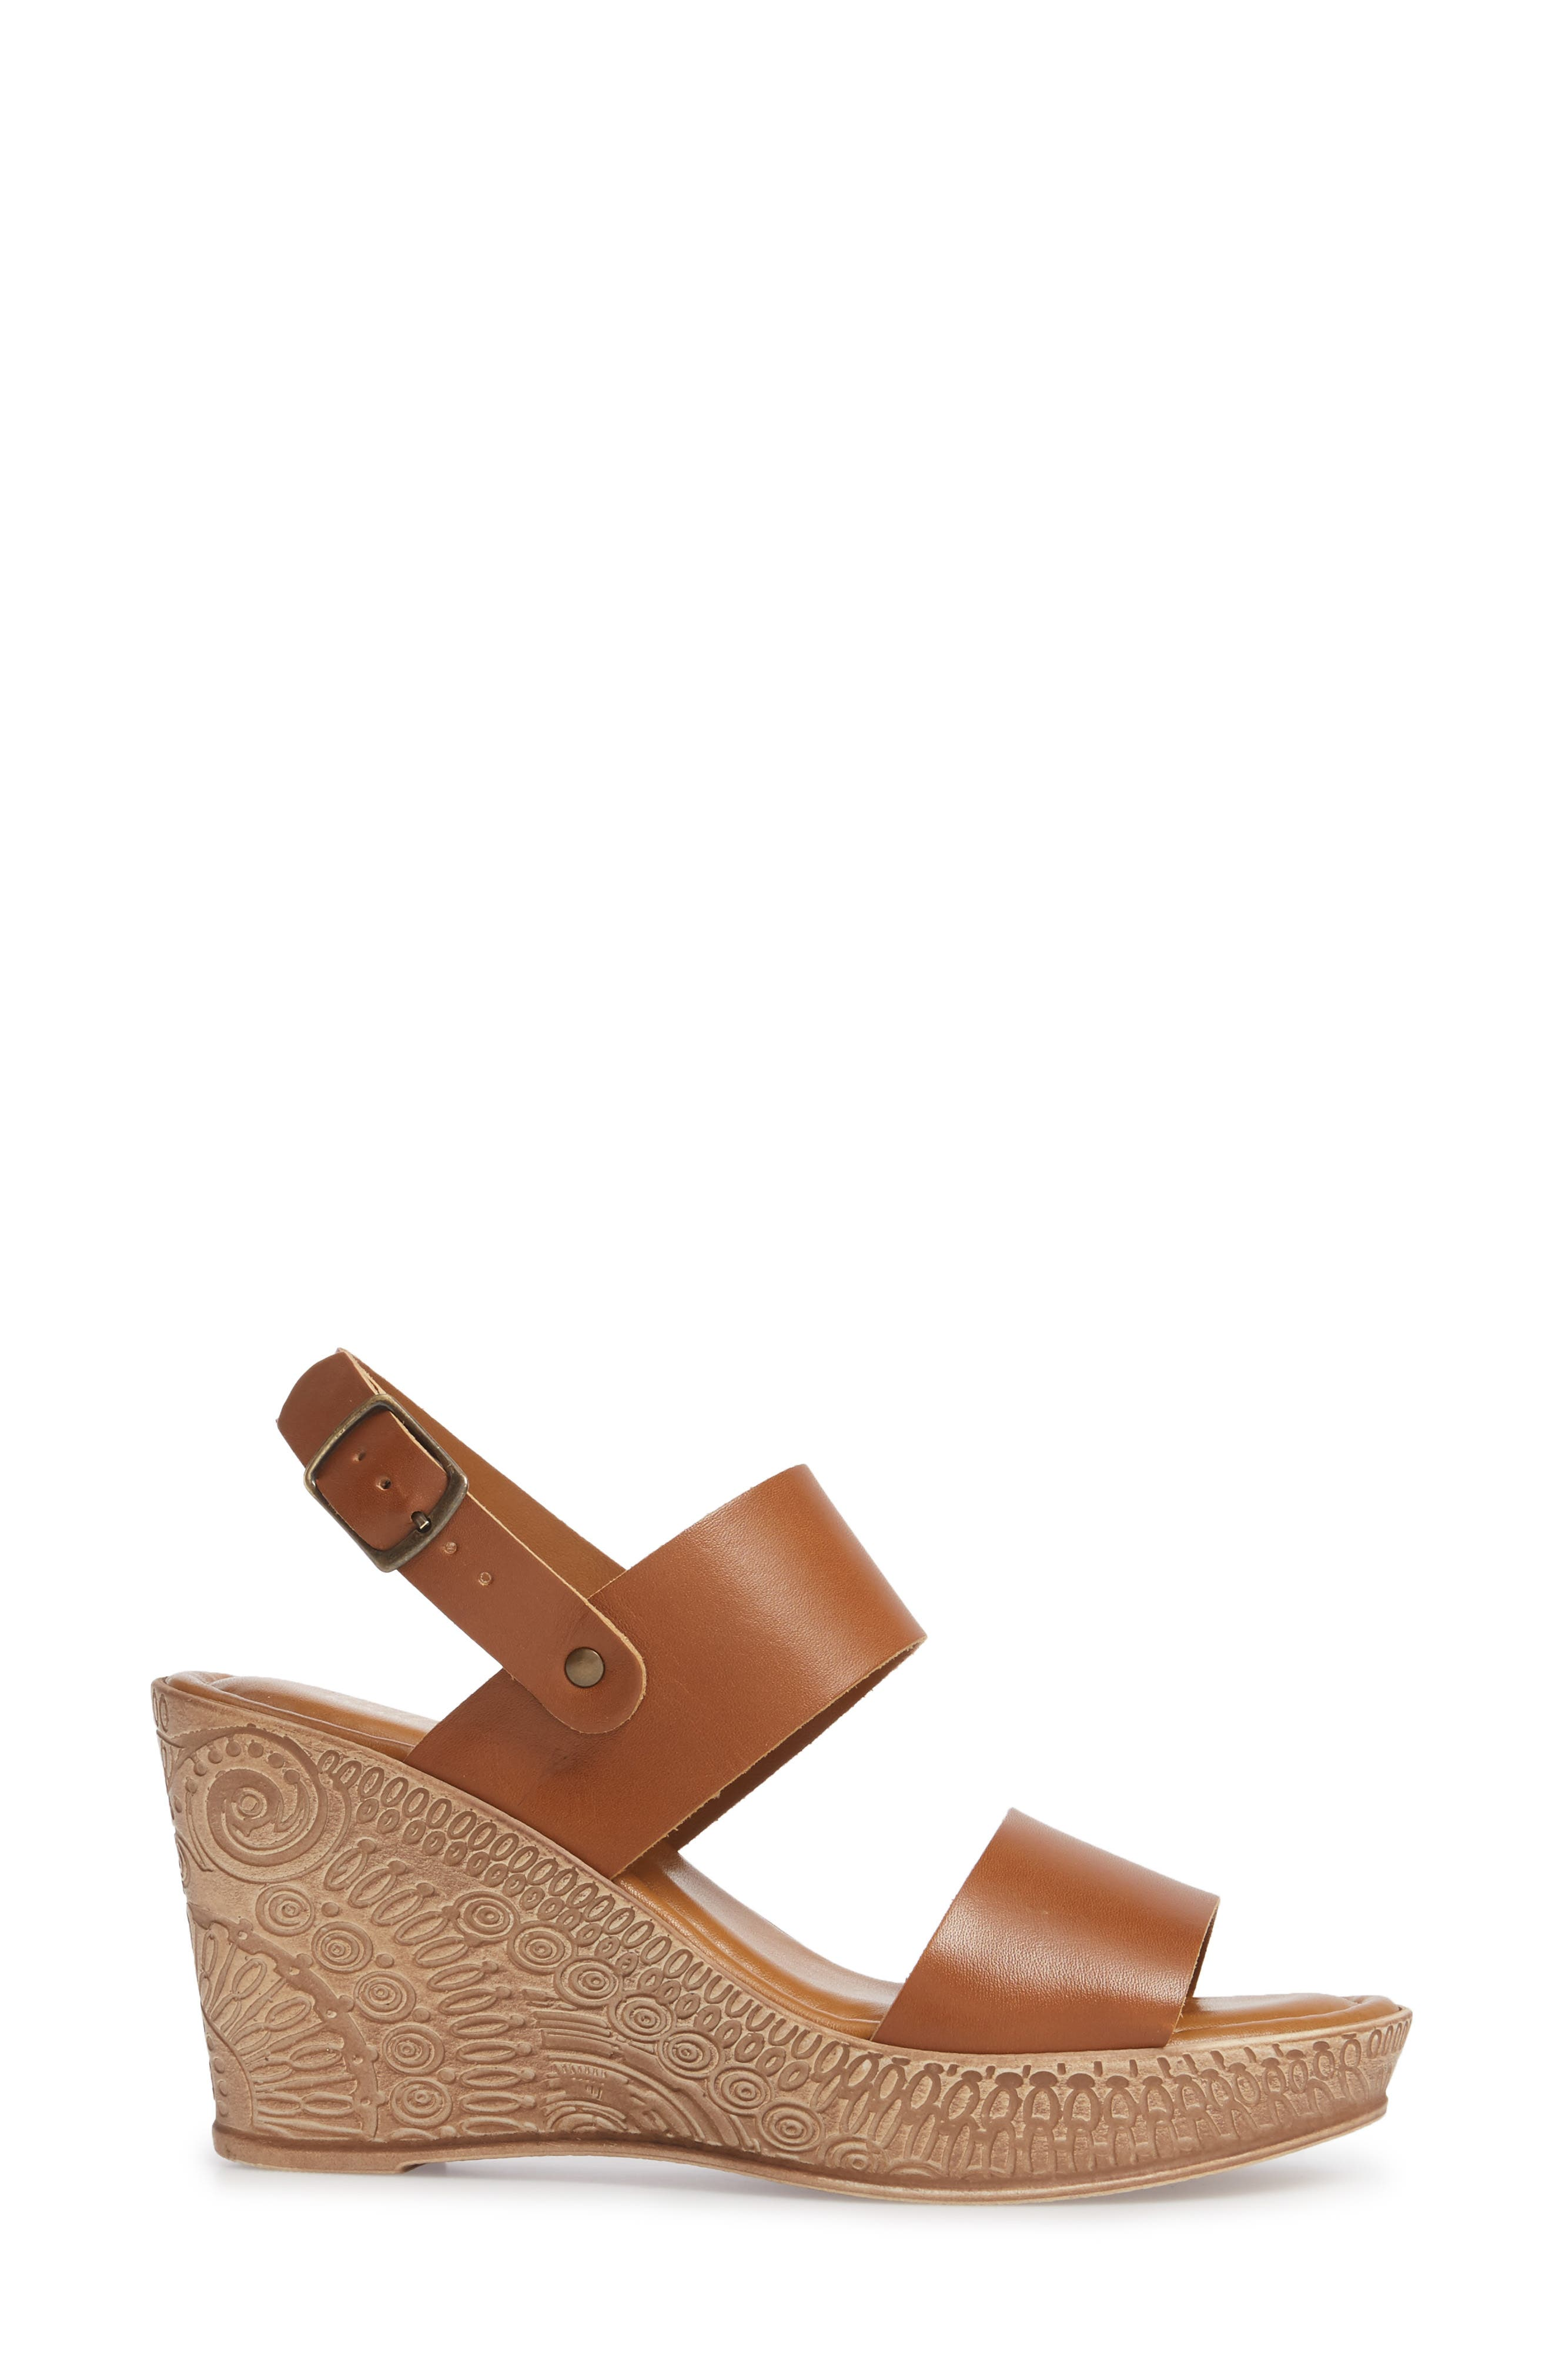 Cor Wedge Sandal,                             Alternate thumbnail 3, color,                             WHISKEY LEATHER